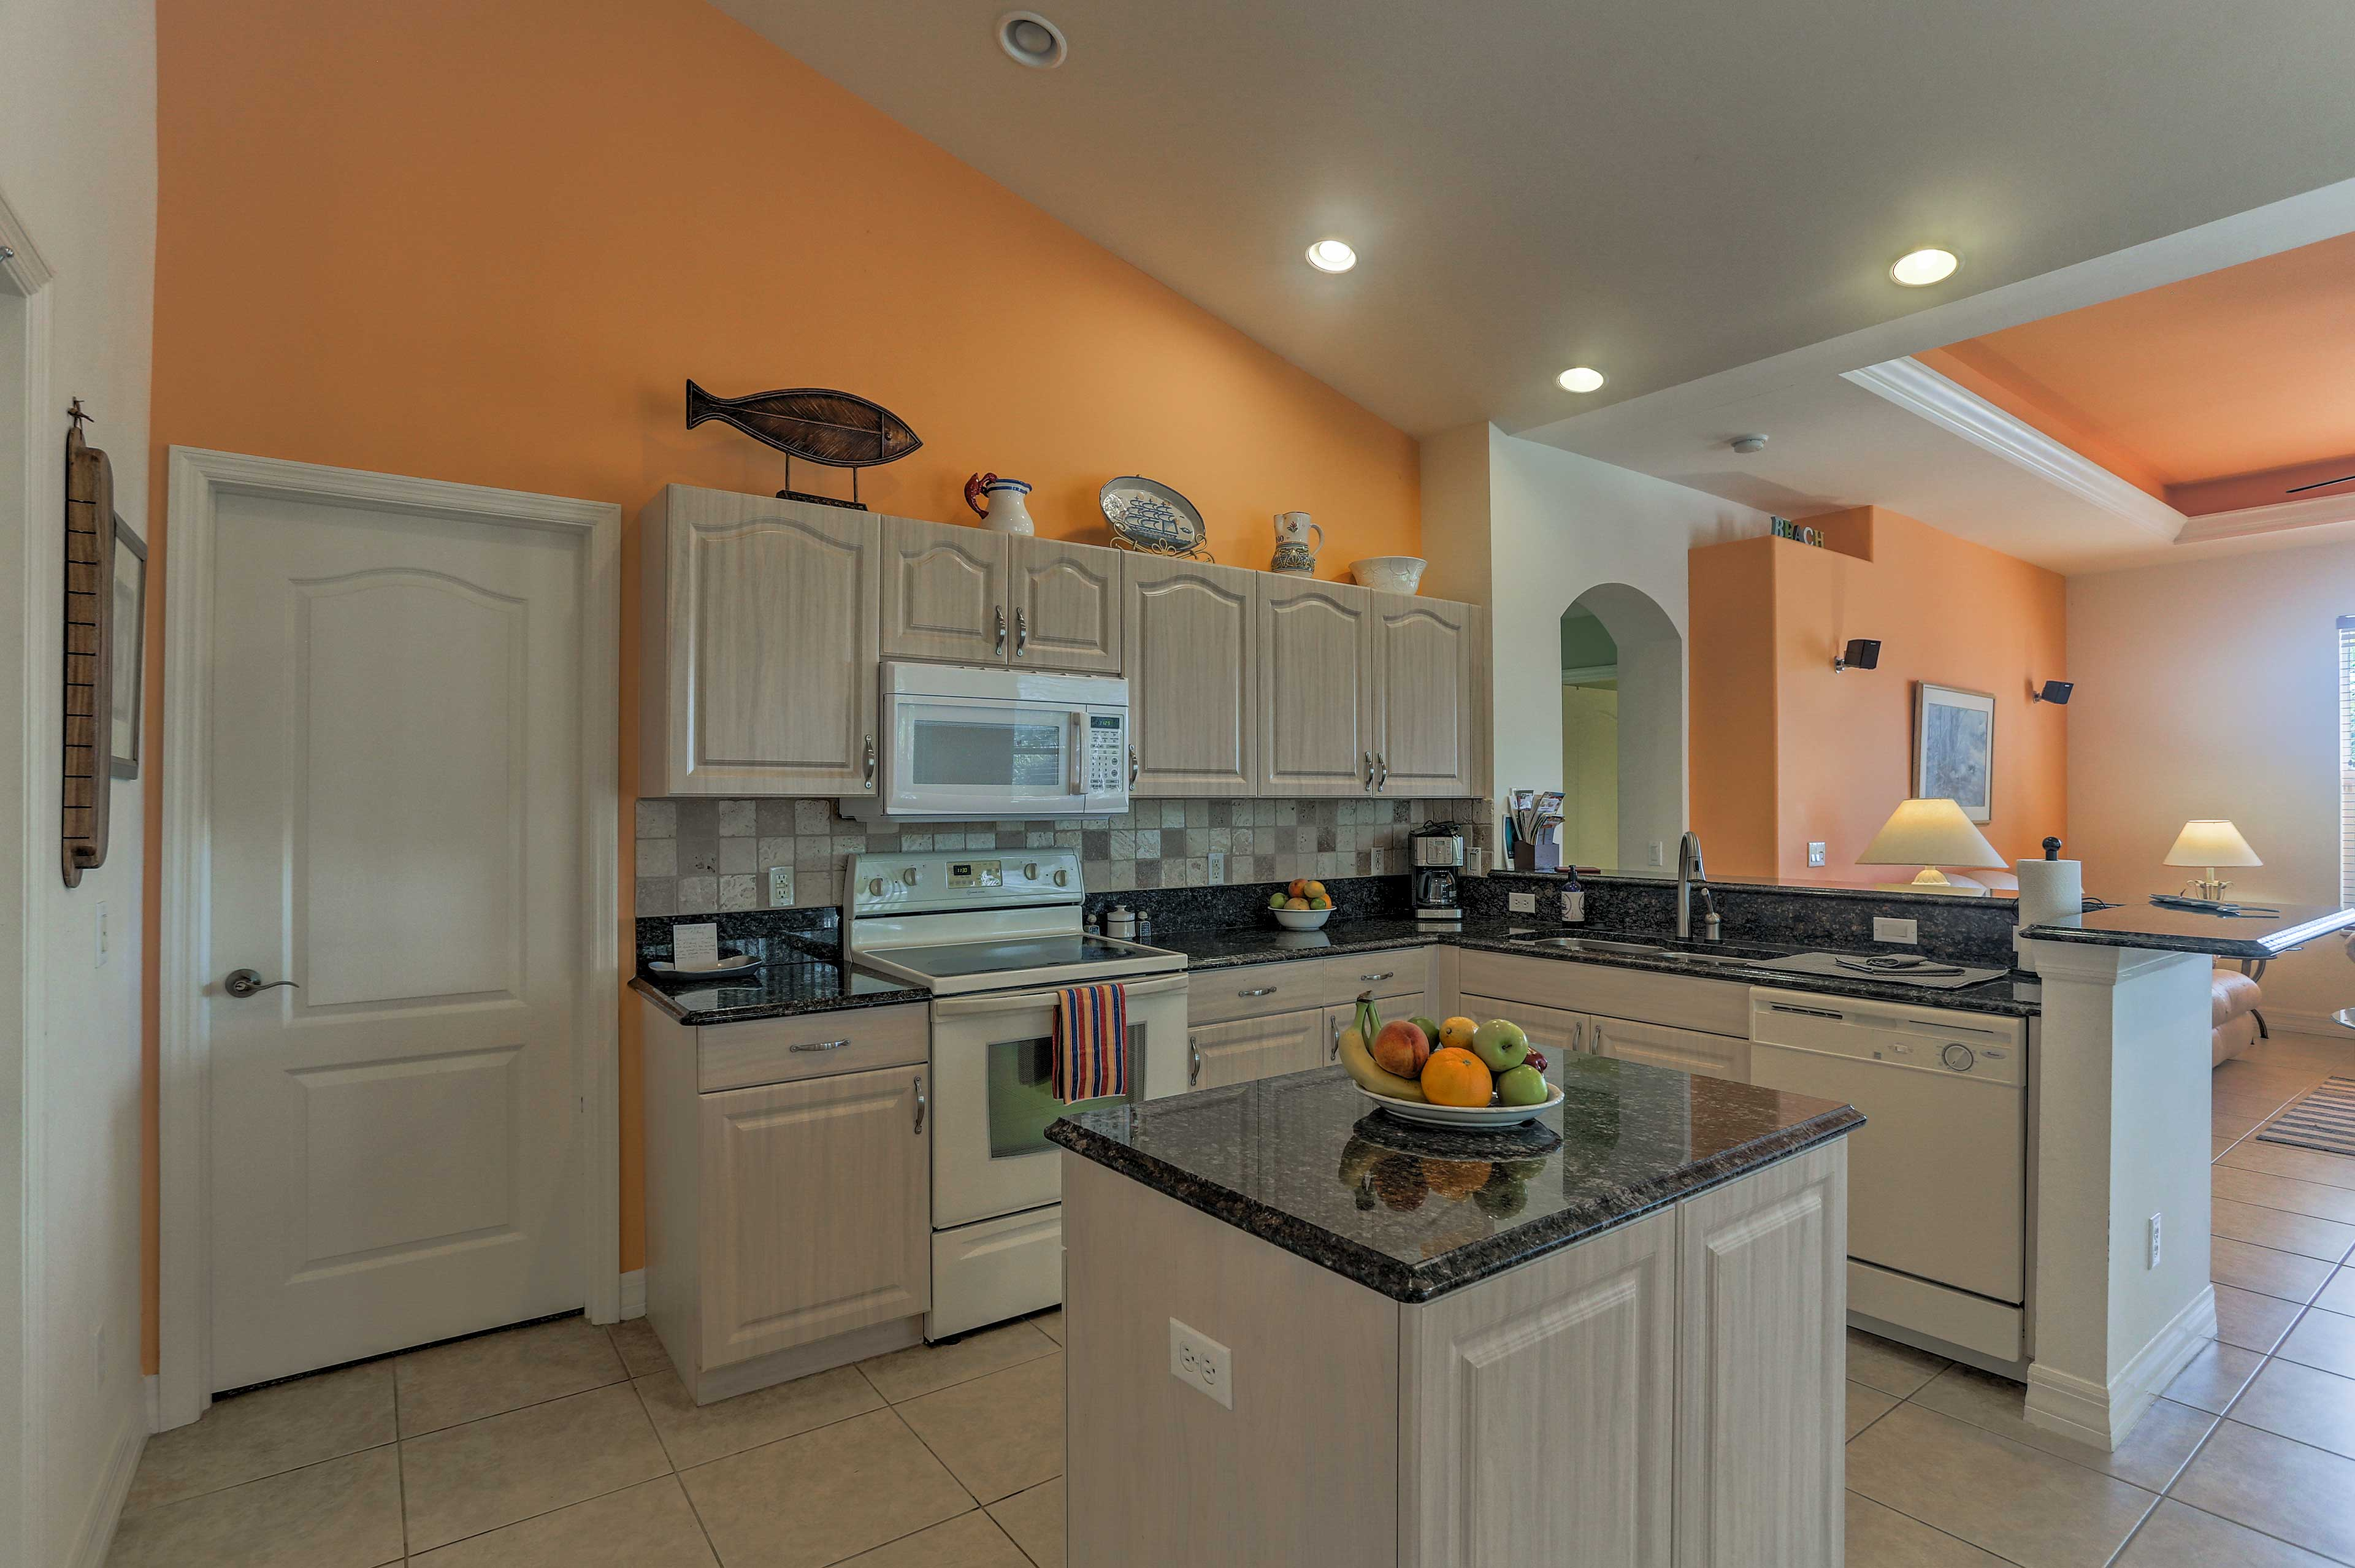 Kitchen | Fully Equipped | Dishwasher | Drip Coffee Maker